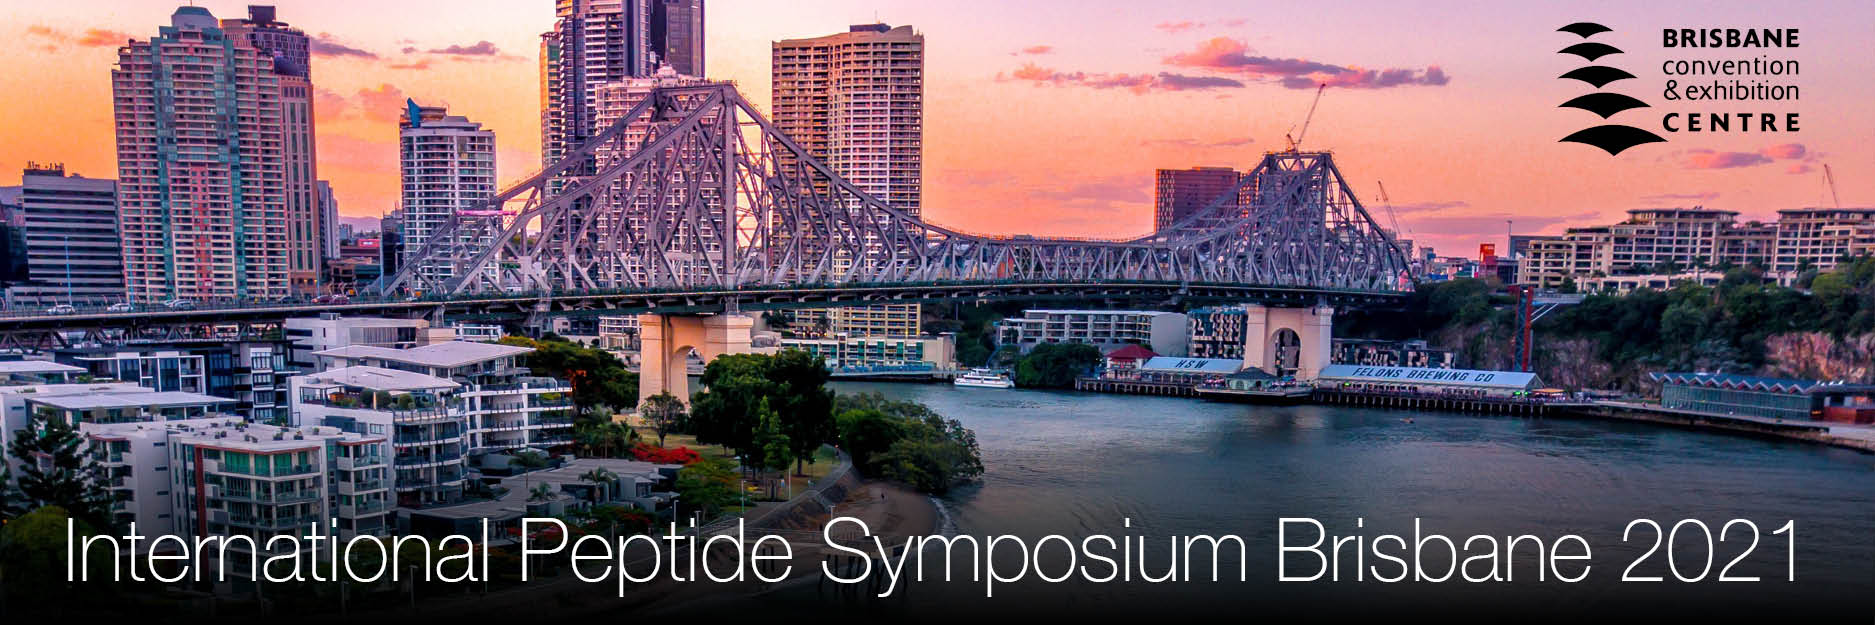 International Peptide Symposium 2021 Brisbane BCEC Event